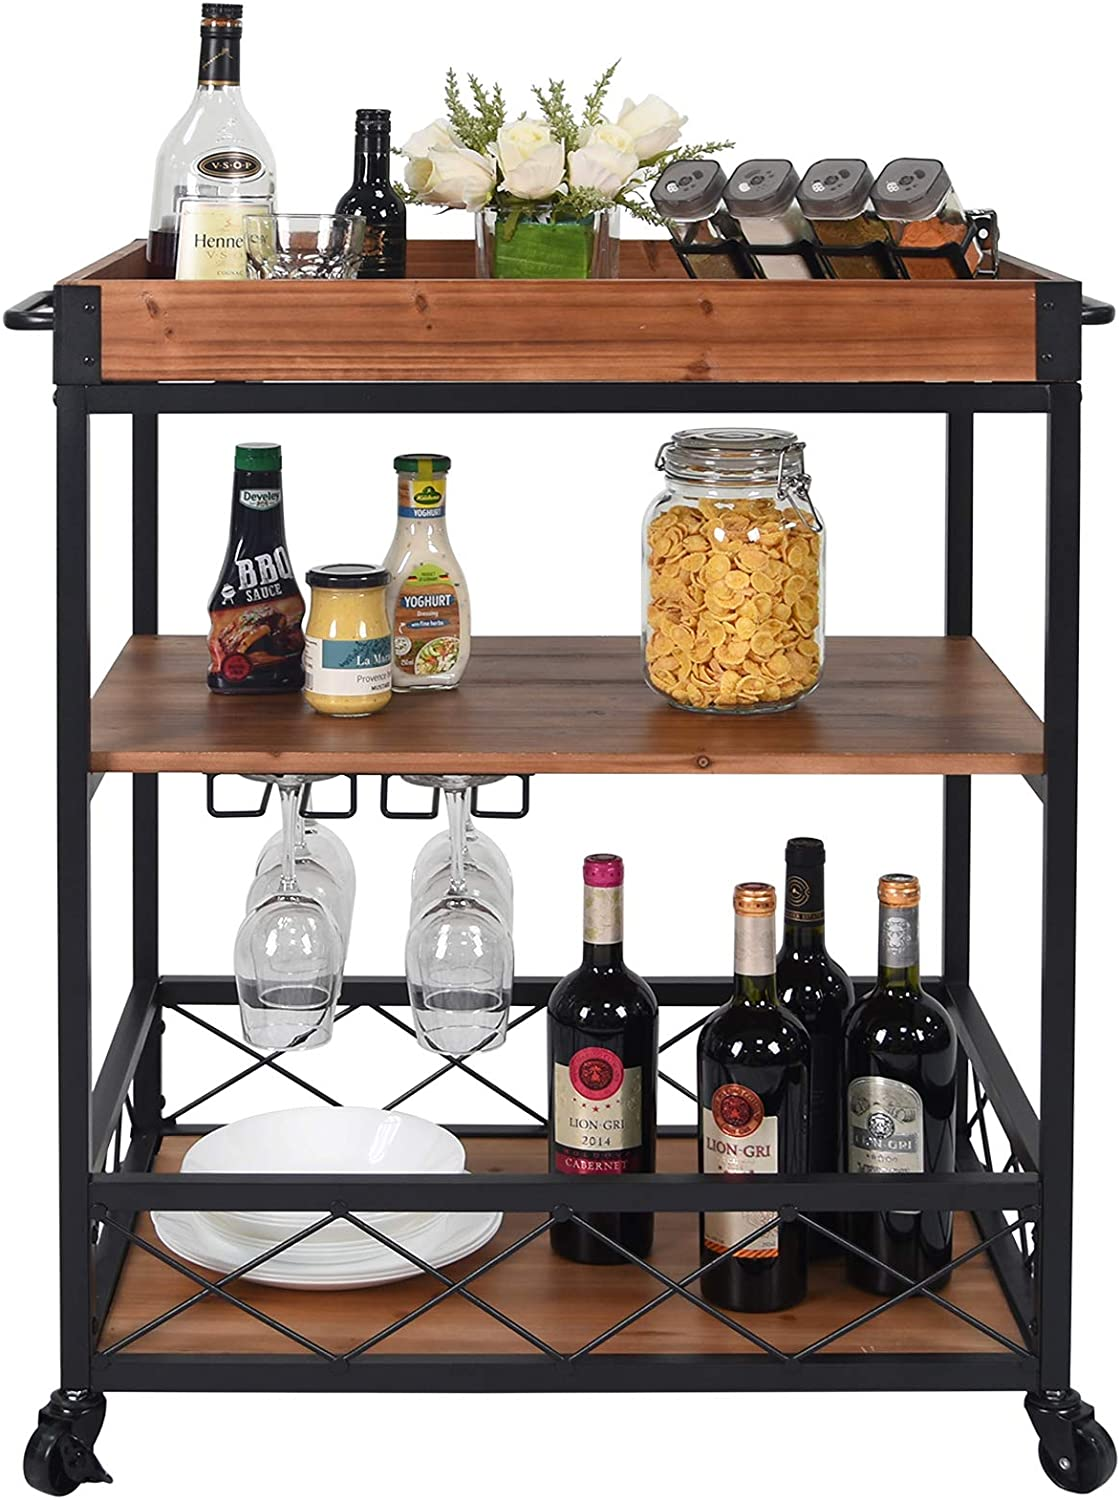 CharaVector Solid Wood Bar Serving Cart, Rolling Kitchen Storage Cart for the Home with Wine Glass Rack and Lockable Caster, Rustic Brown - Bar & Serving Carts